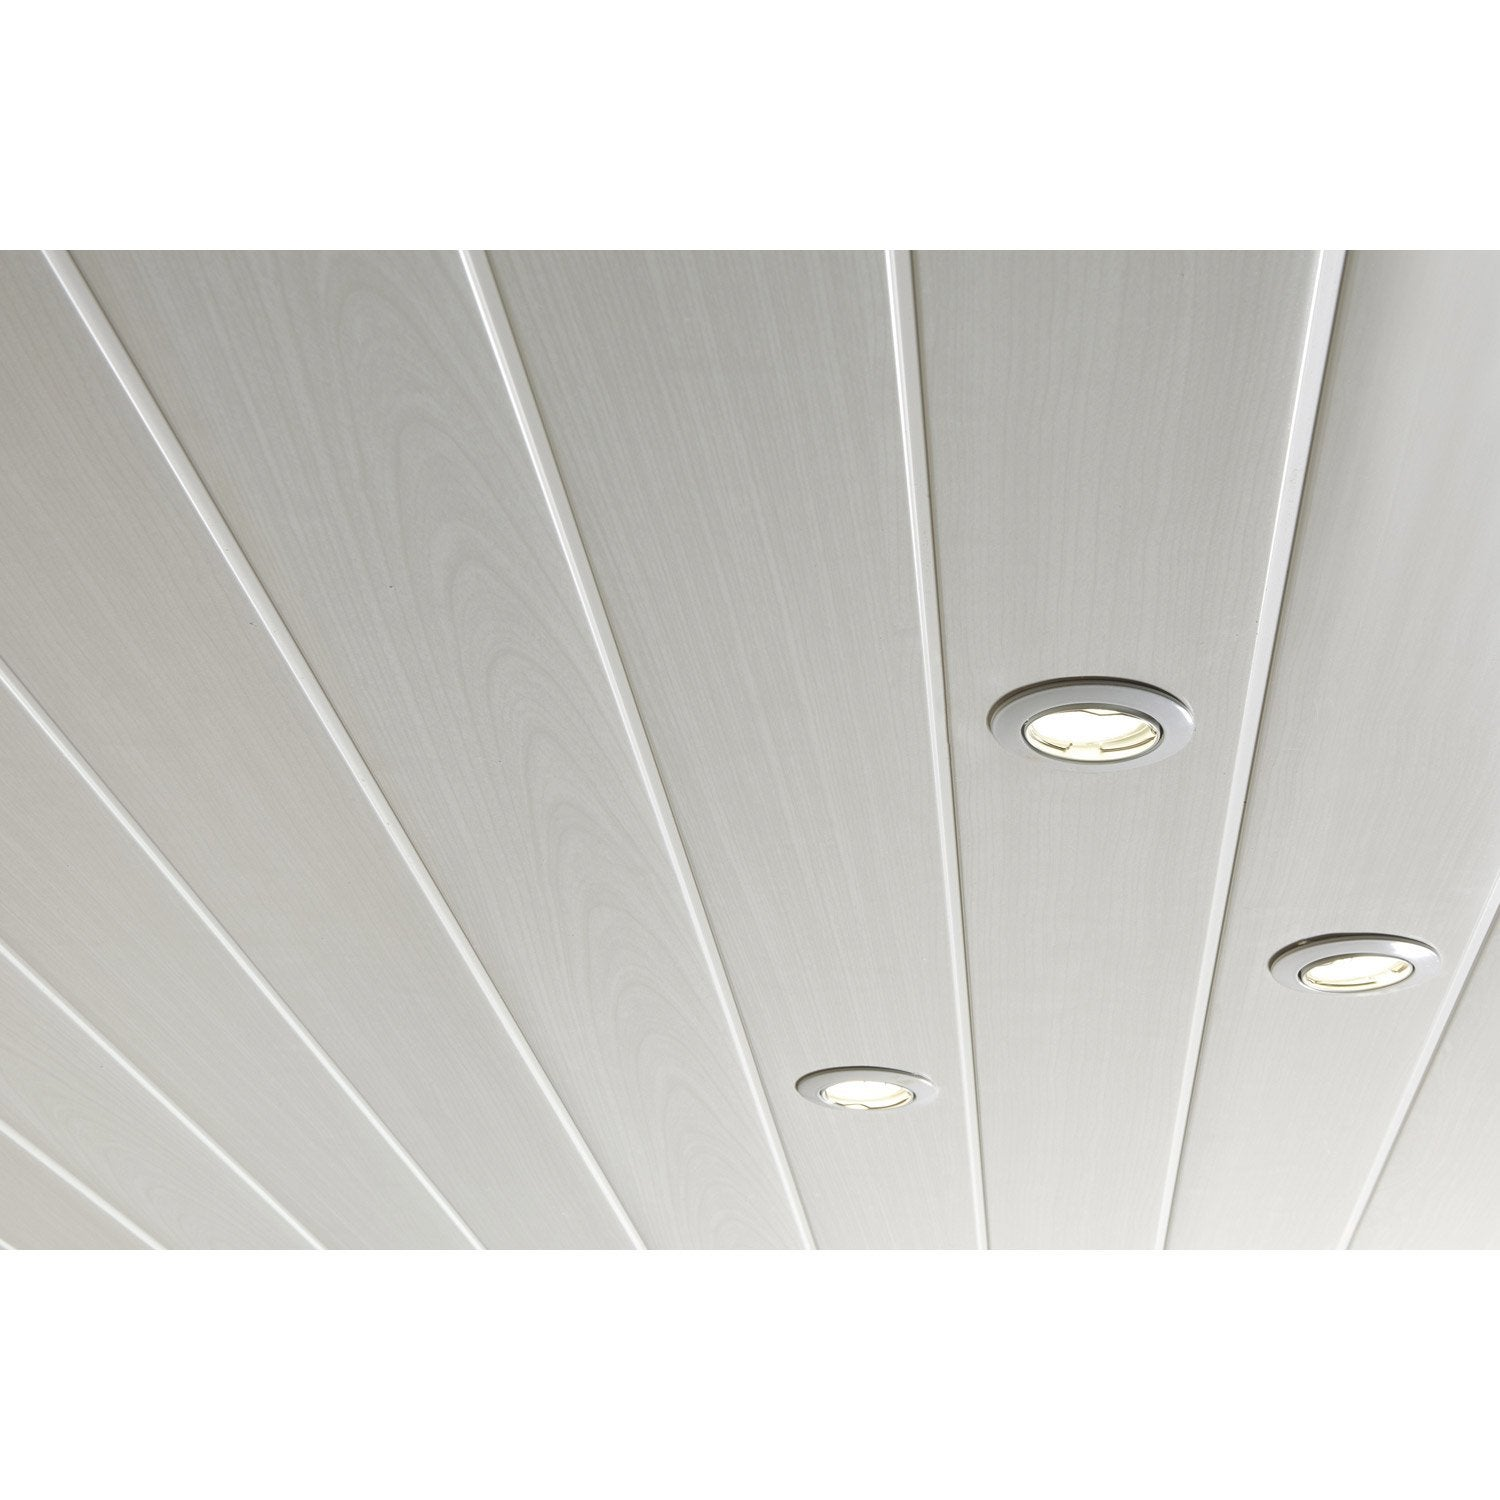 Pose de lambris pvc en plafond tours prix travaux for Pose plafond pvc